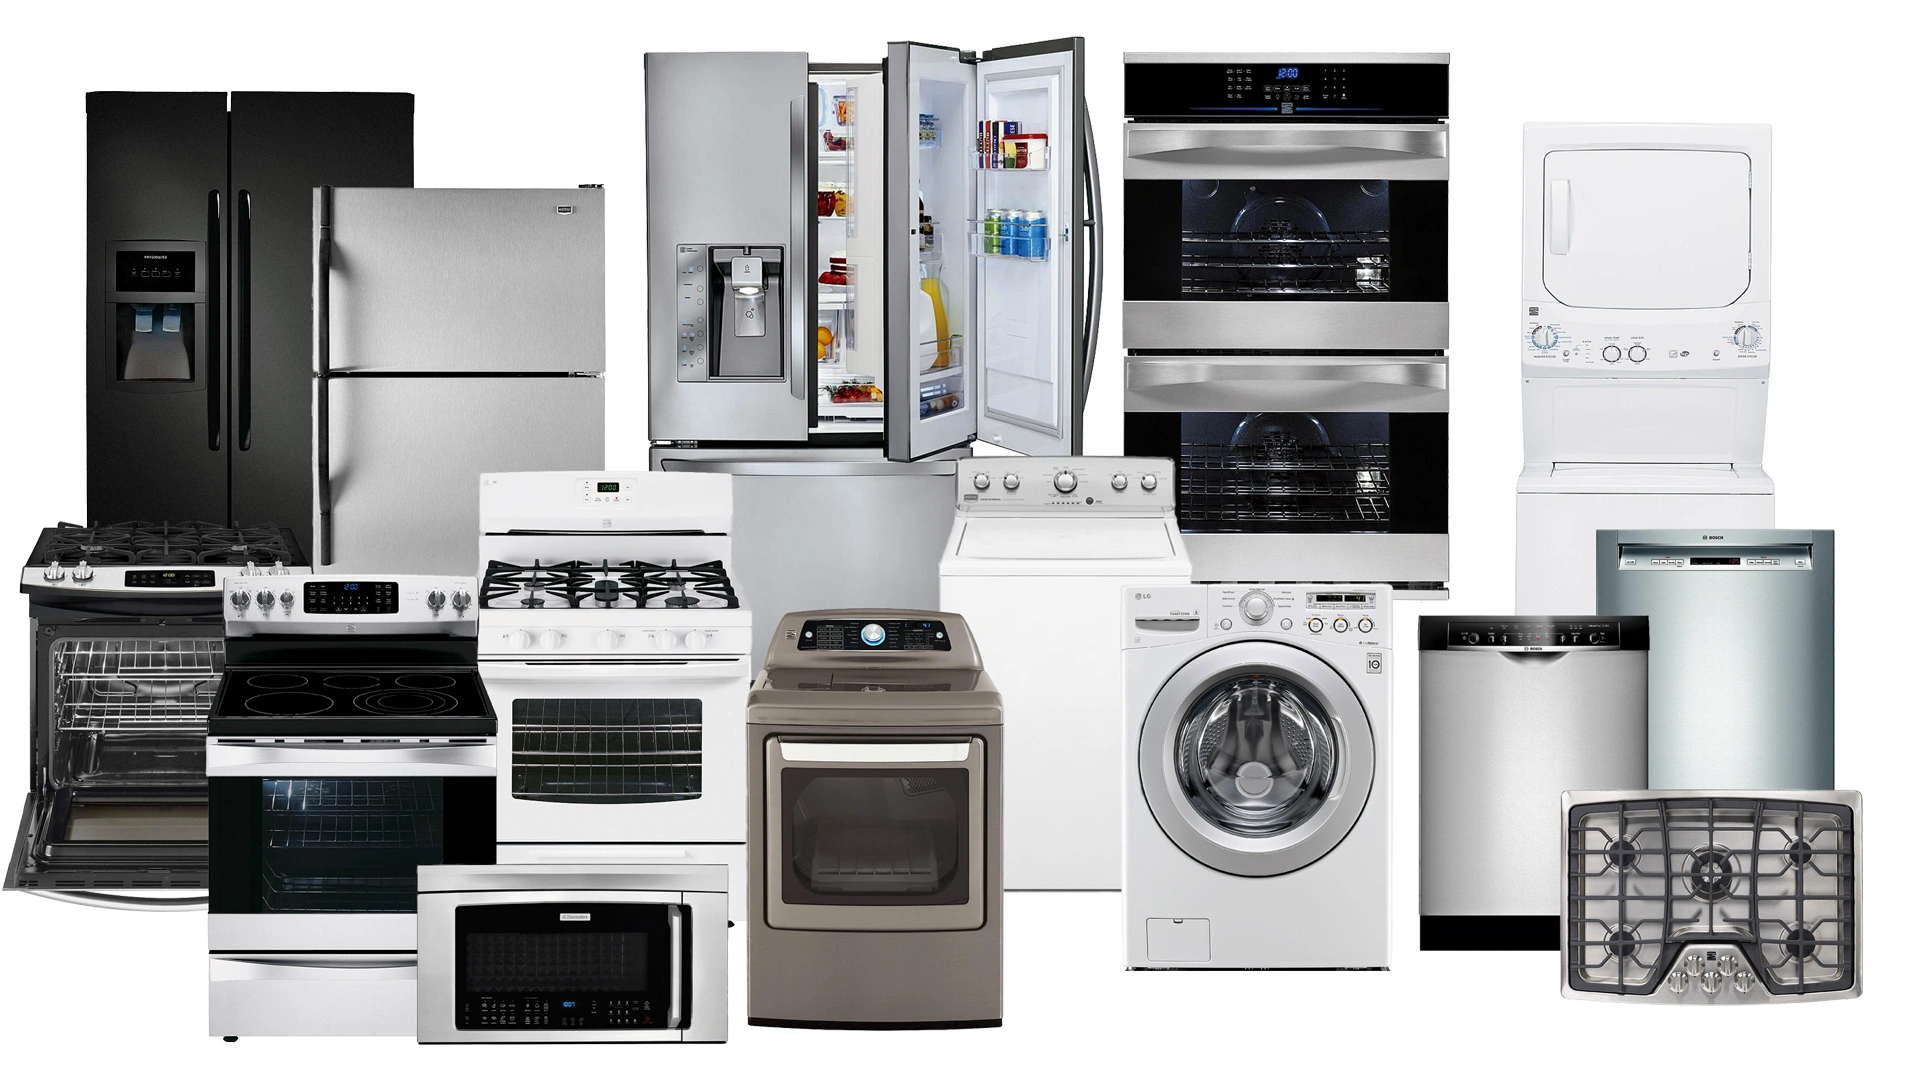 How to choose a device repair company to   repair your home appliance